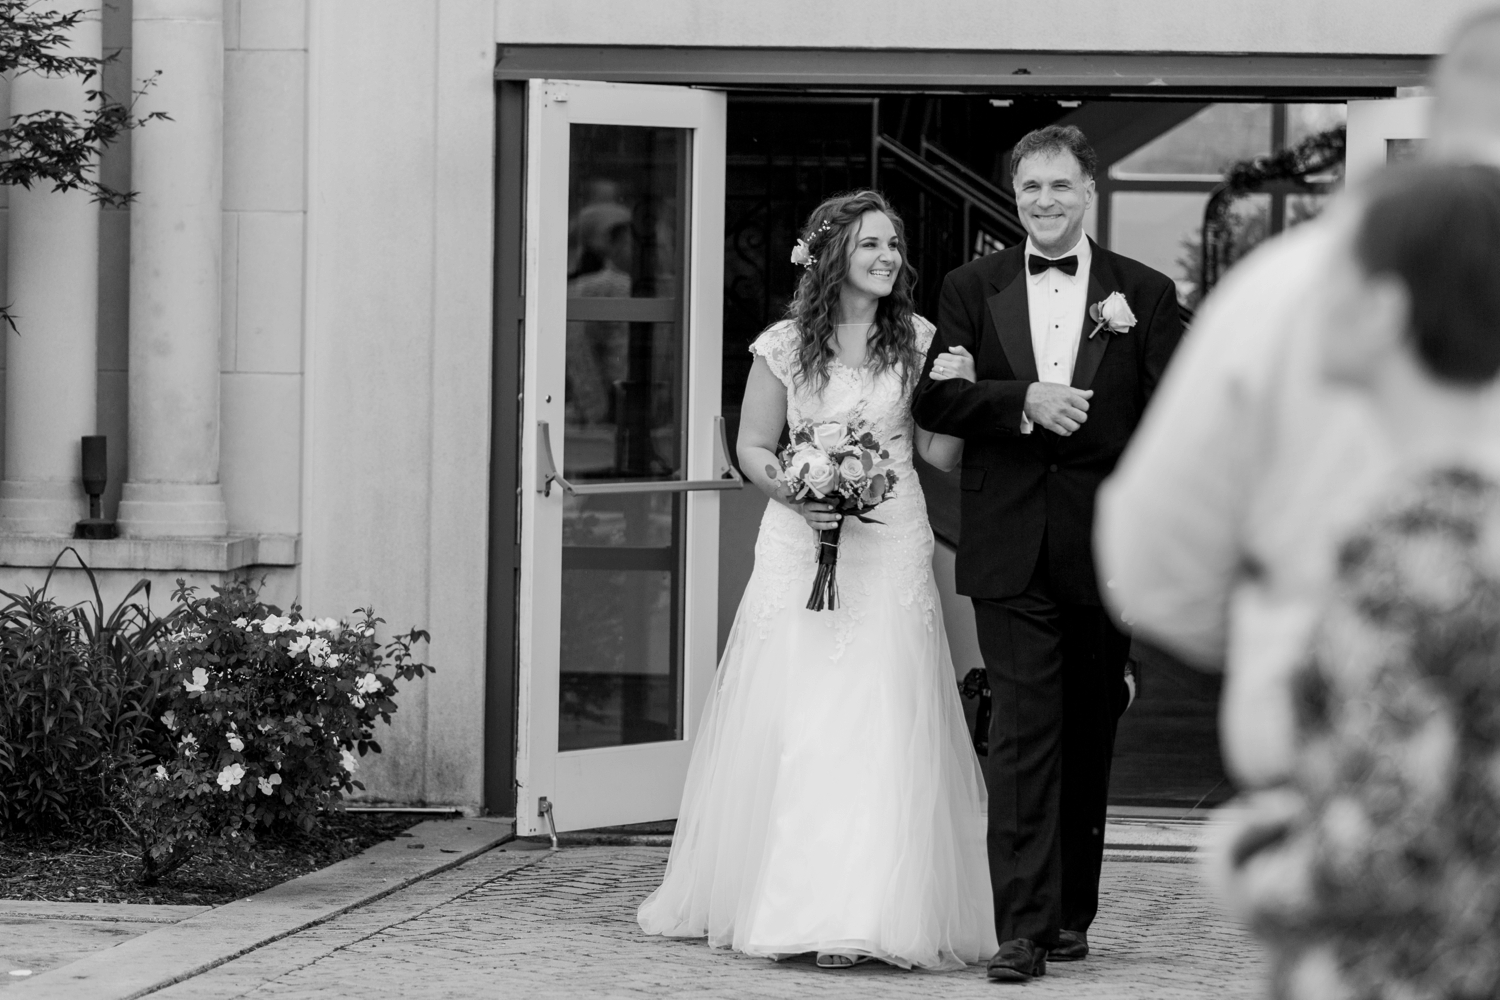 Community_Life_Center_Indianapolis_Indiana_Wedding_Photographer_Chloe_Luka_Photography_6946.jpg